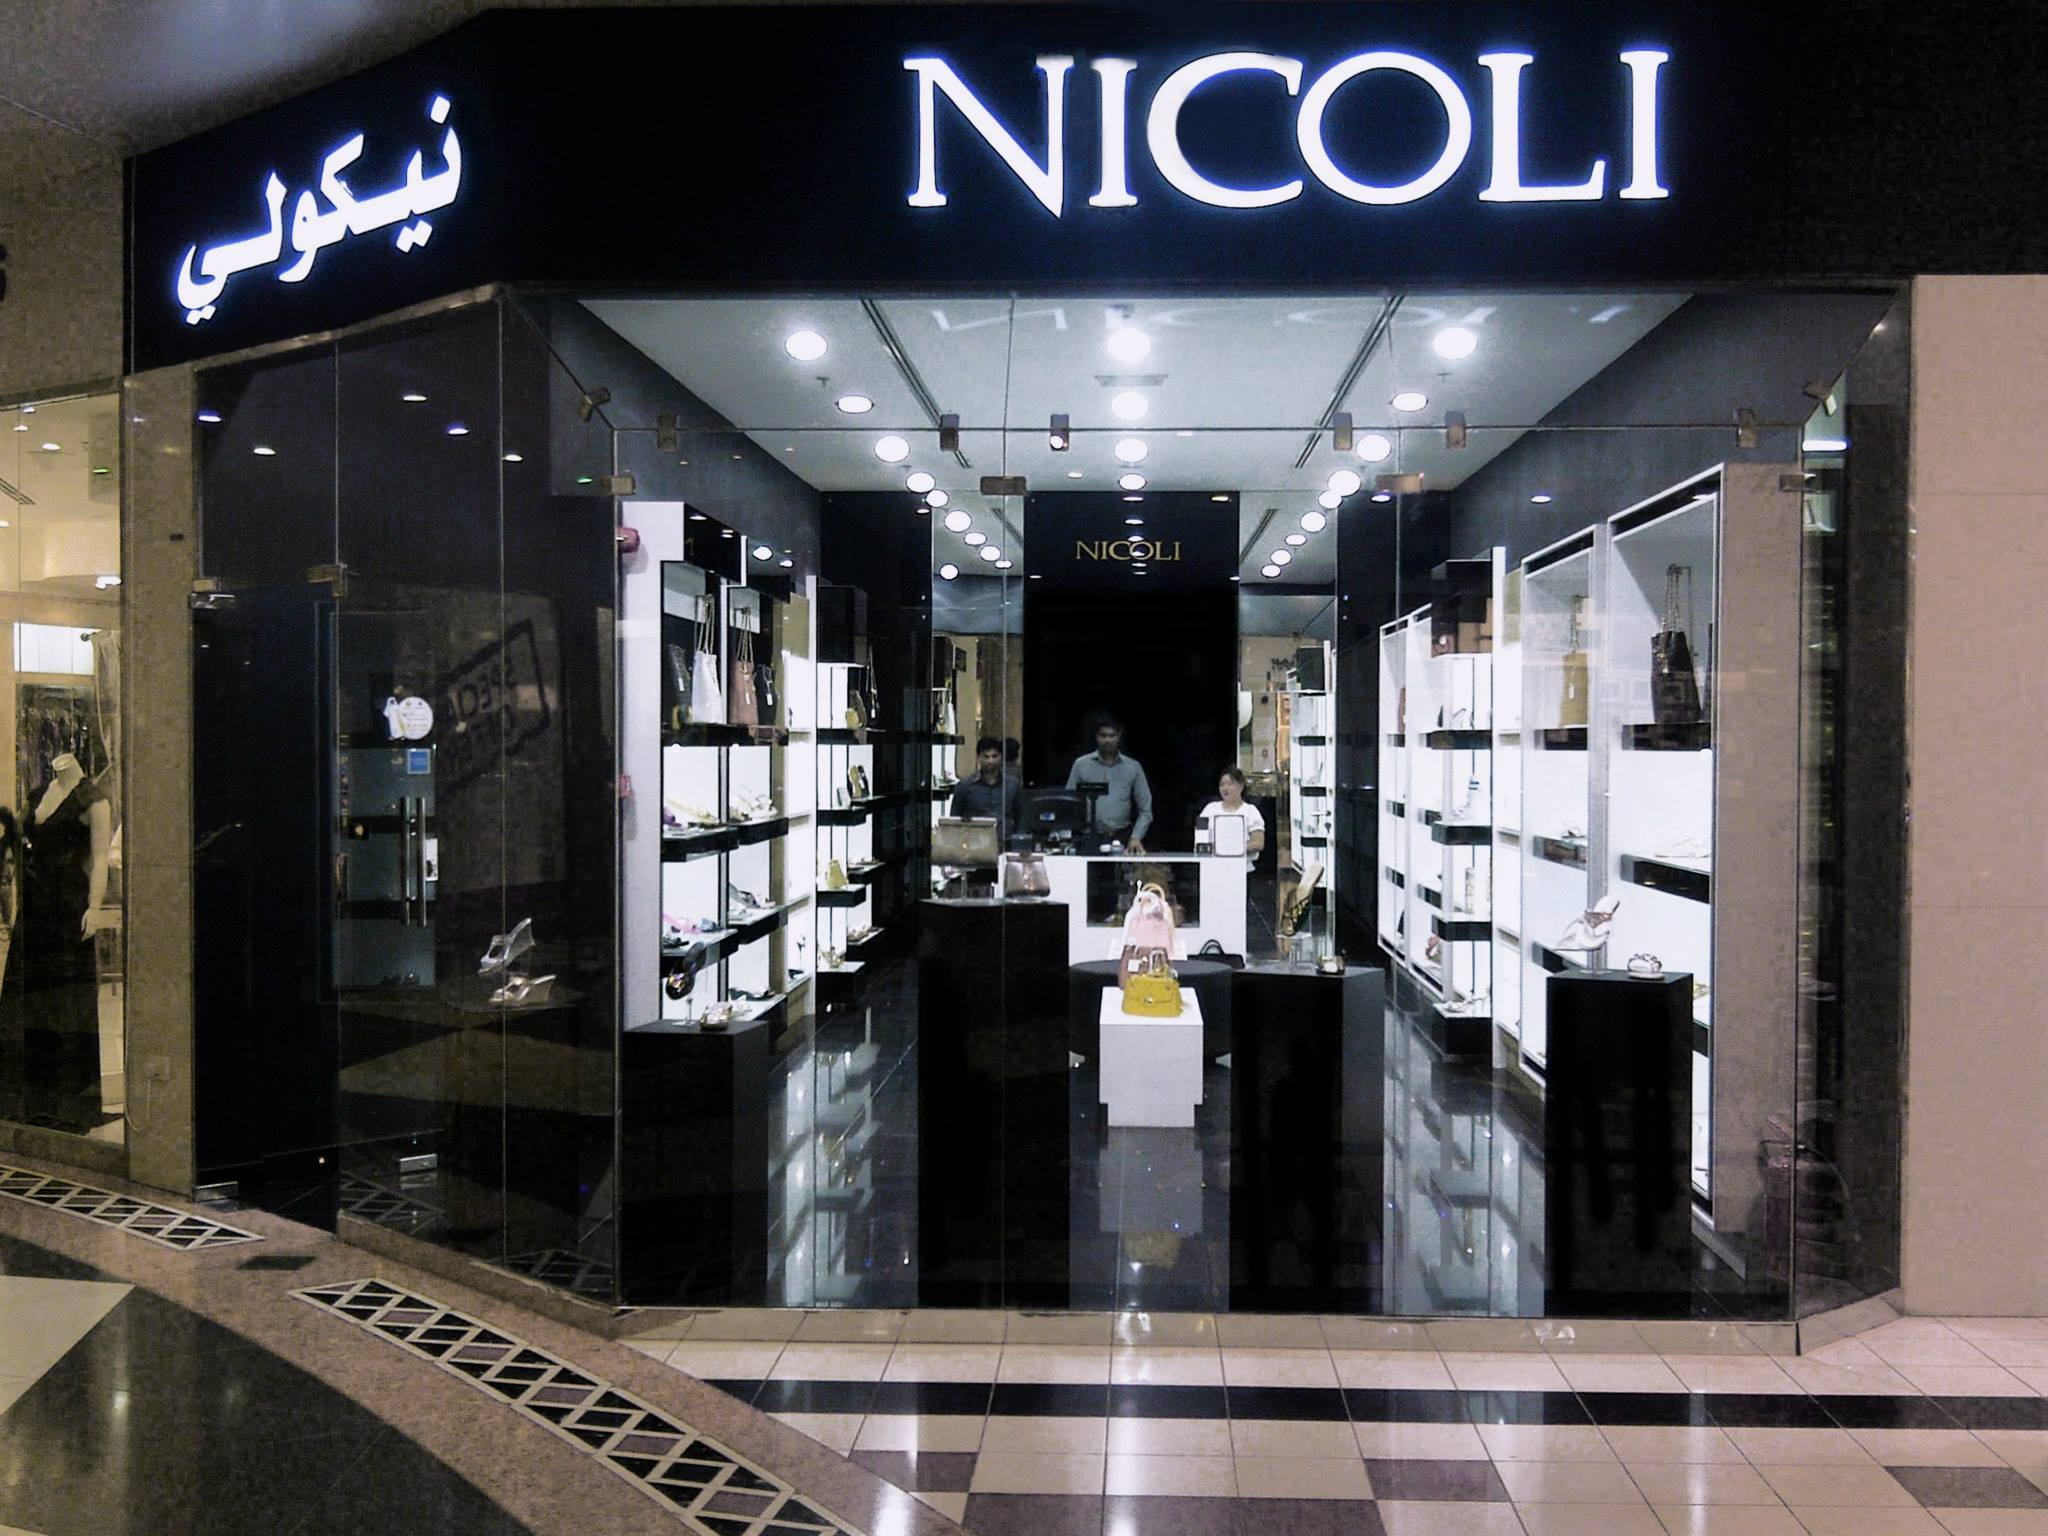 Nicoli Royal Plaza Mall Qatar Boutiquenicoli Luxury Crystal Embellished Shoes Handbags